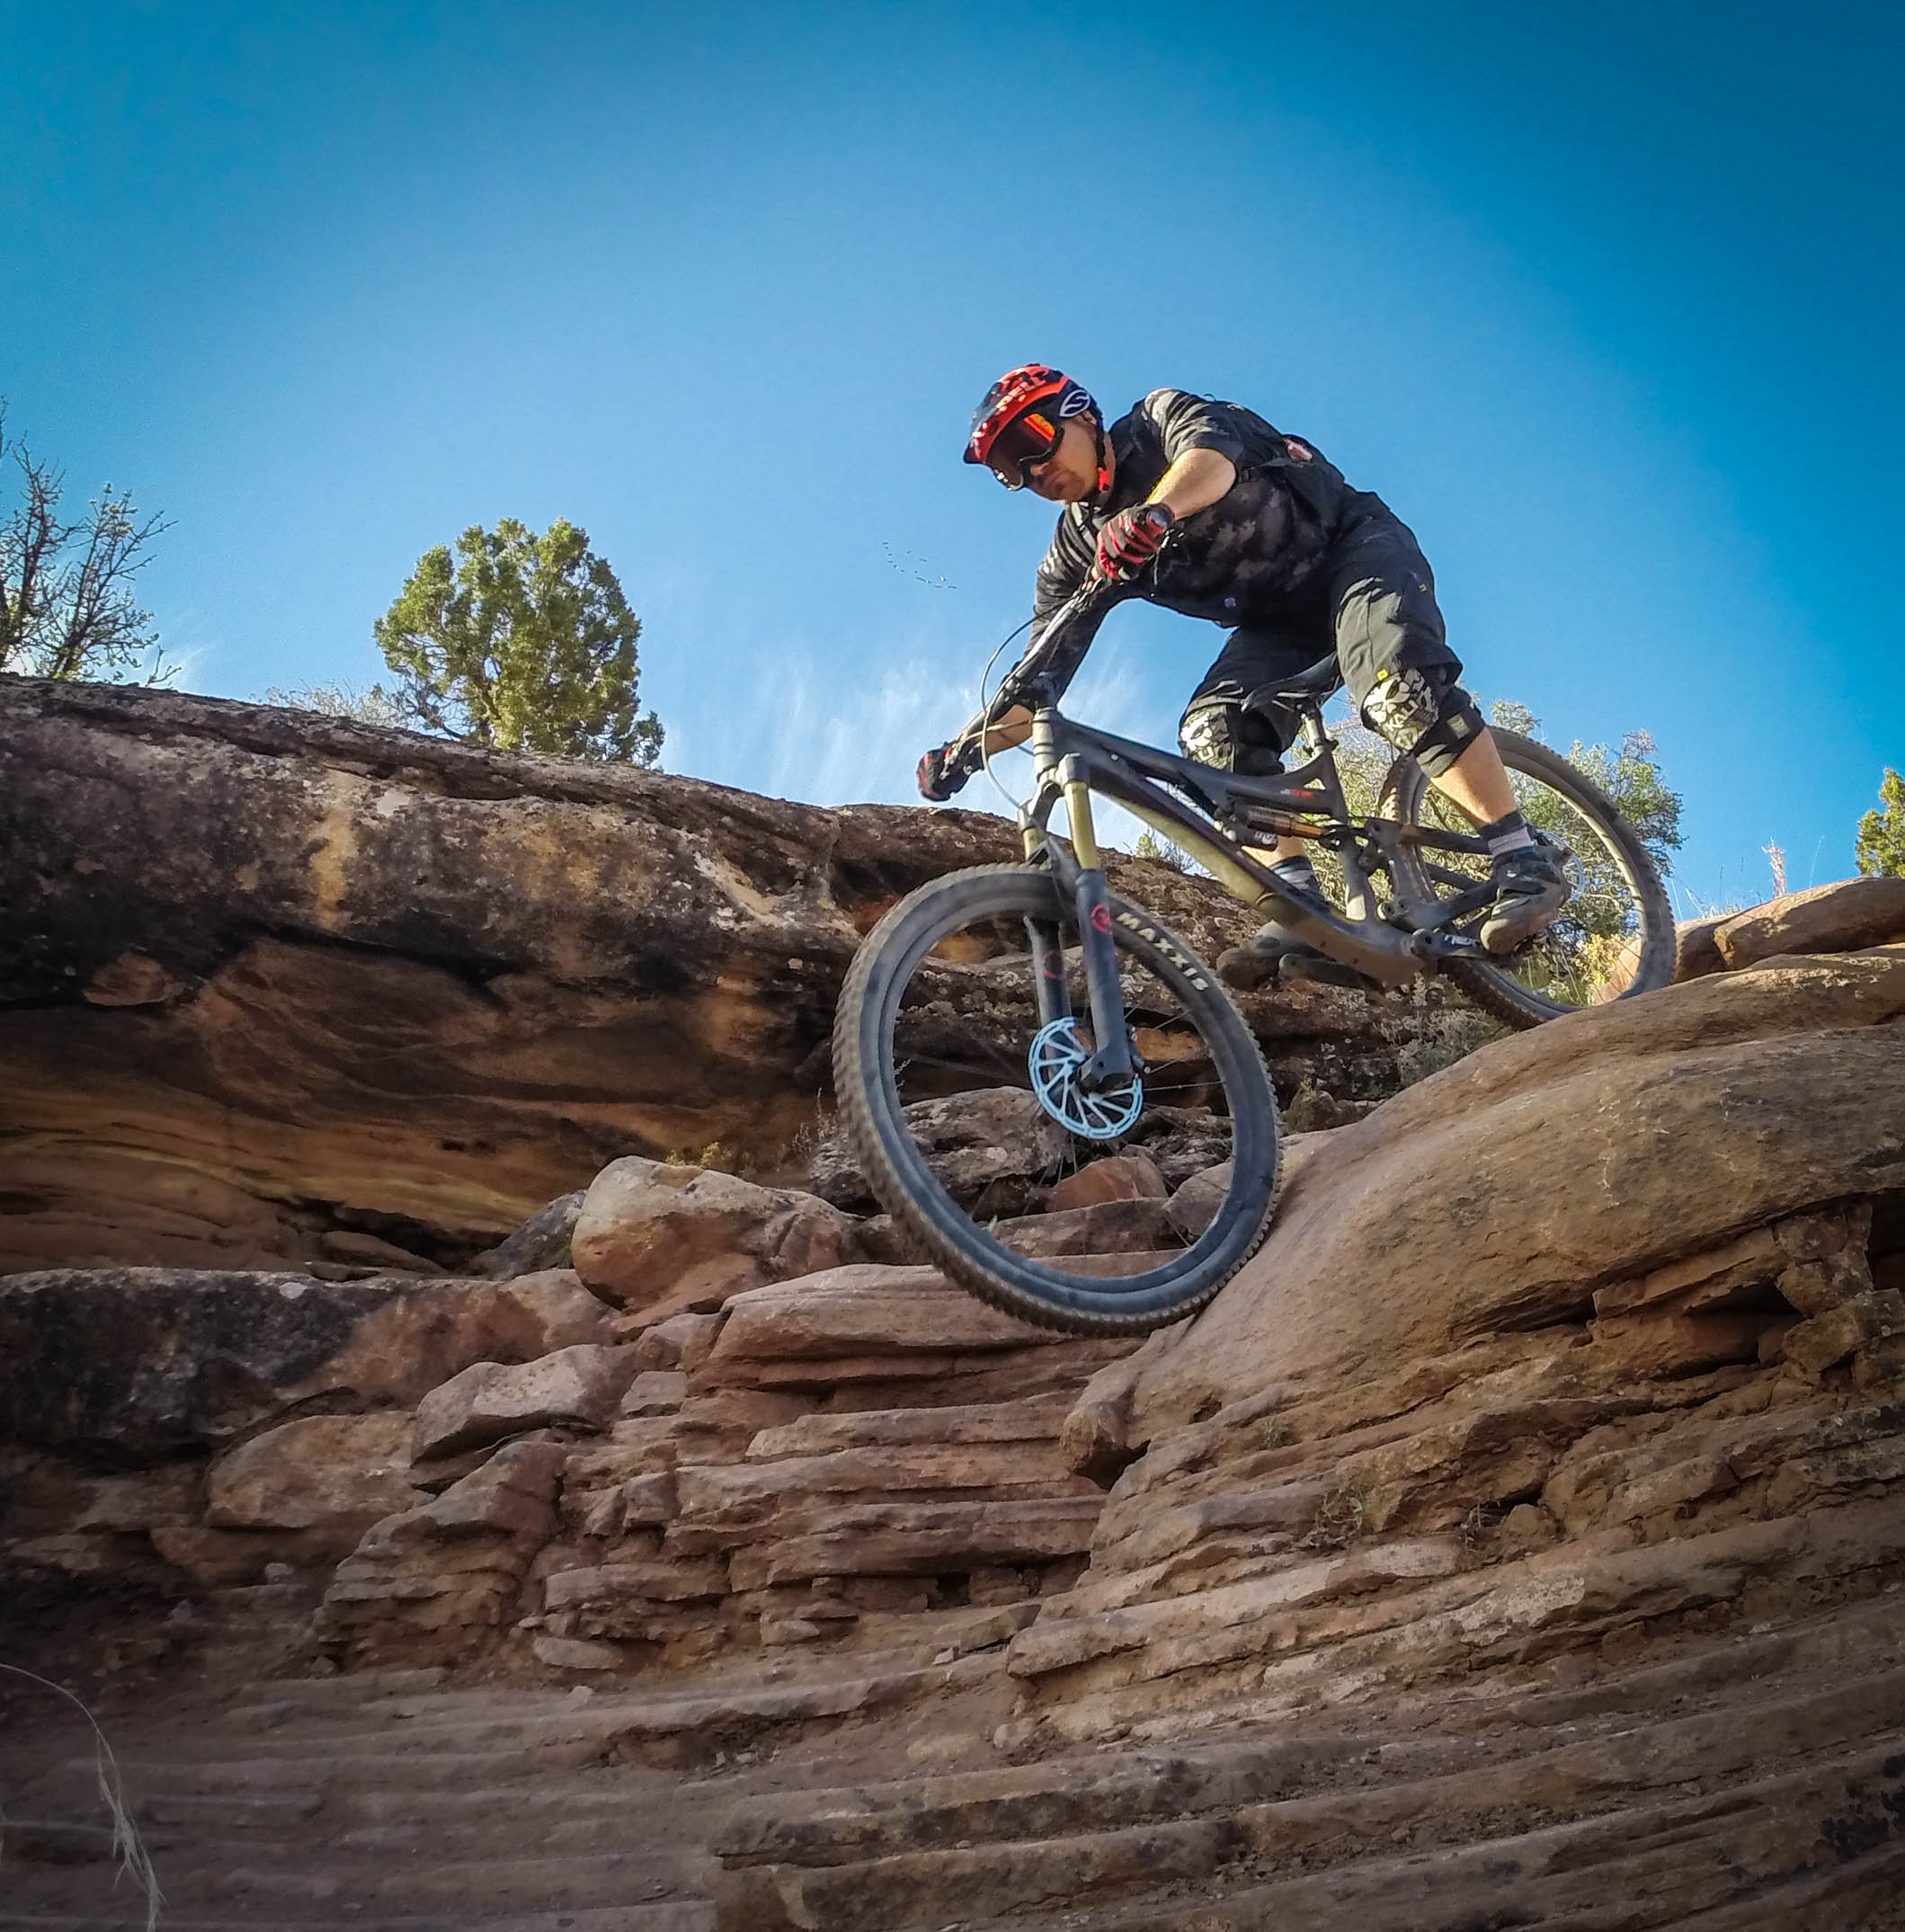 Review Sram Guide Rsc Brakes Singletracks Mountain Bike News Disc Brake Pad Avid X0 Trail R Rs After Testing These On Two Bikes From 5 Degrees To 85 In Snow And The Deseert I Can Honestly Say They Are Awesome